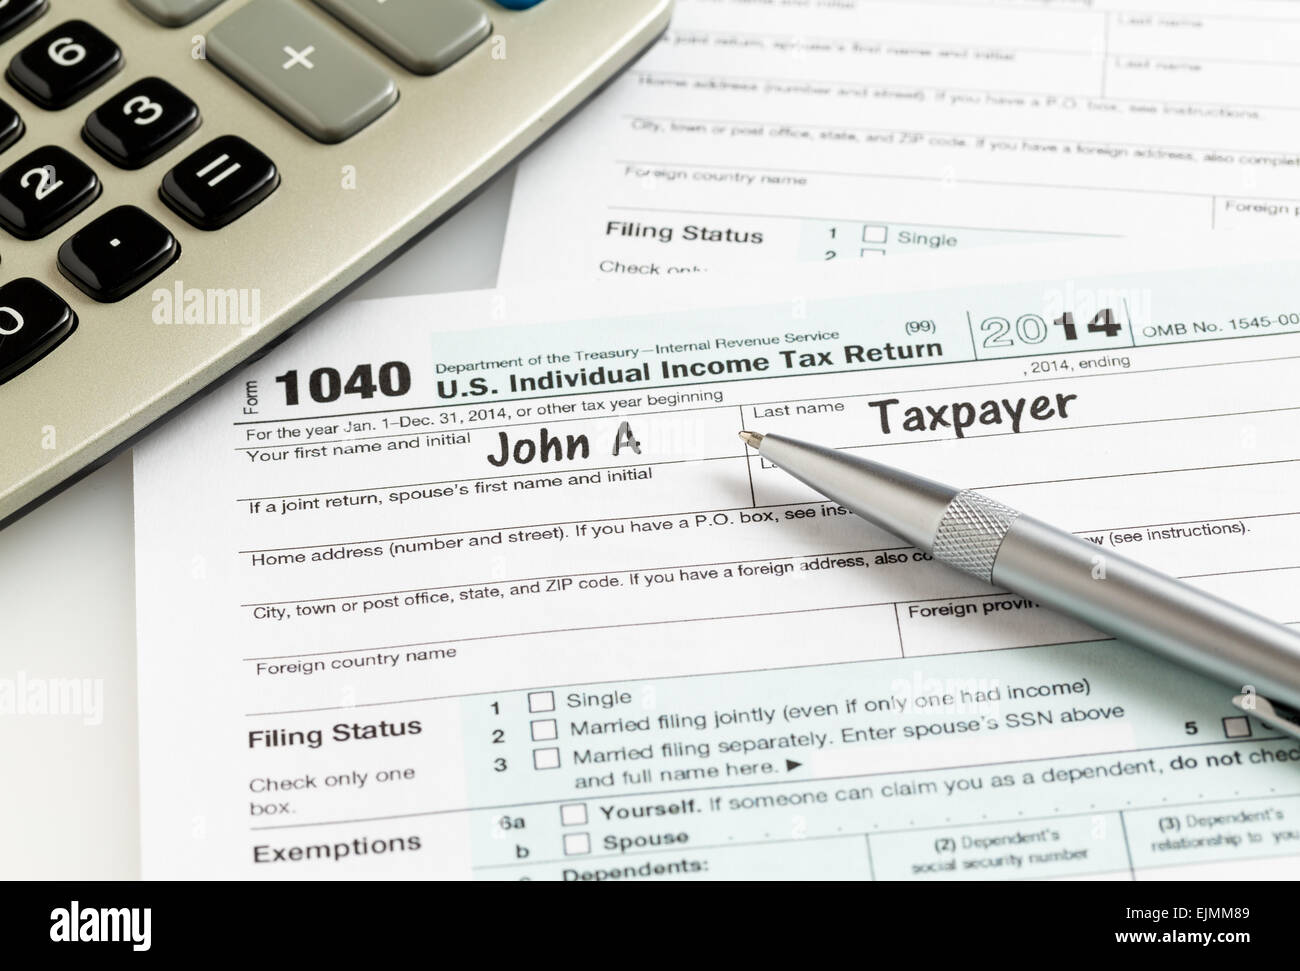 Usa Tax Form 1040 For Year 2014 With A Pen And Calculator Stock